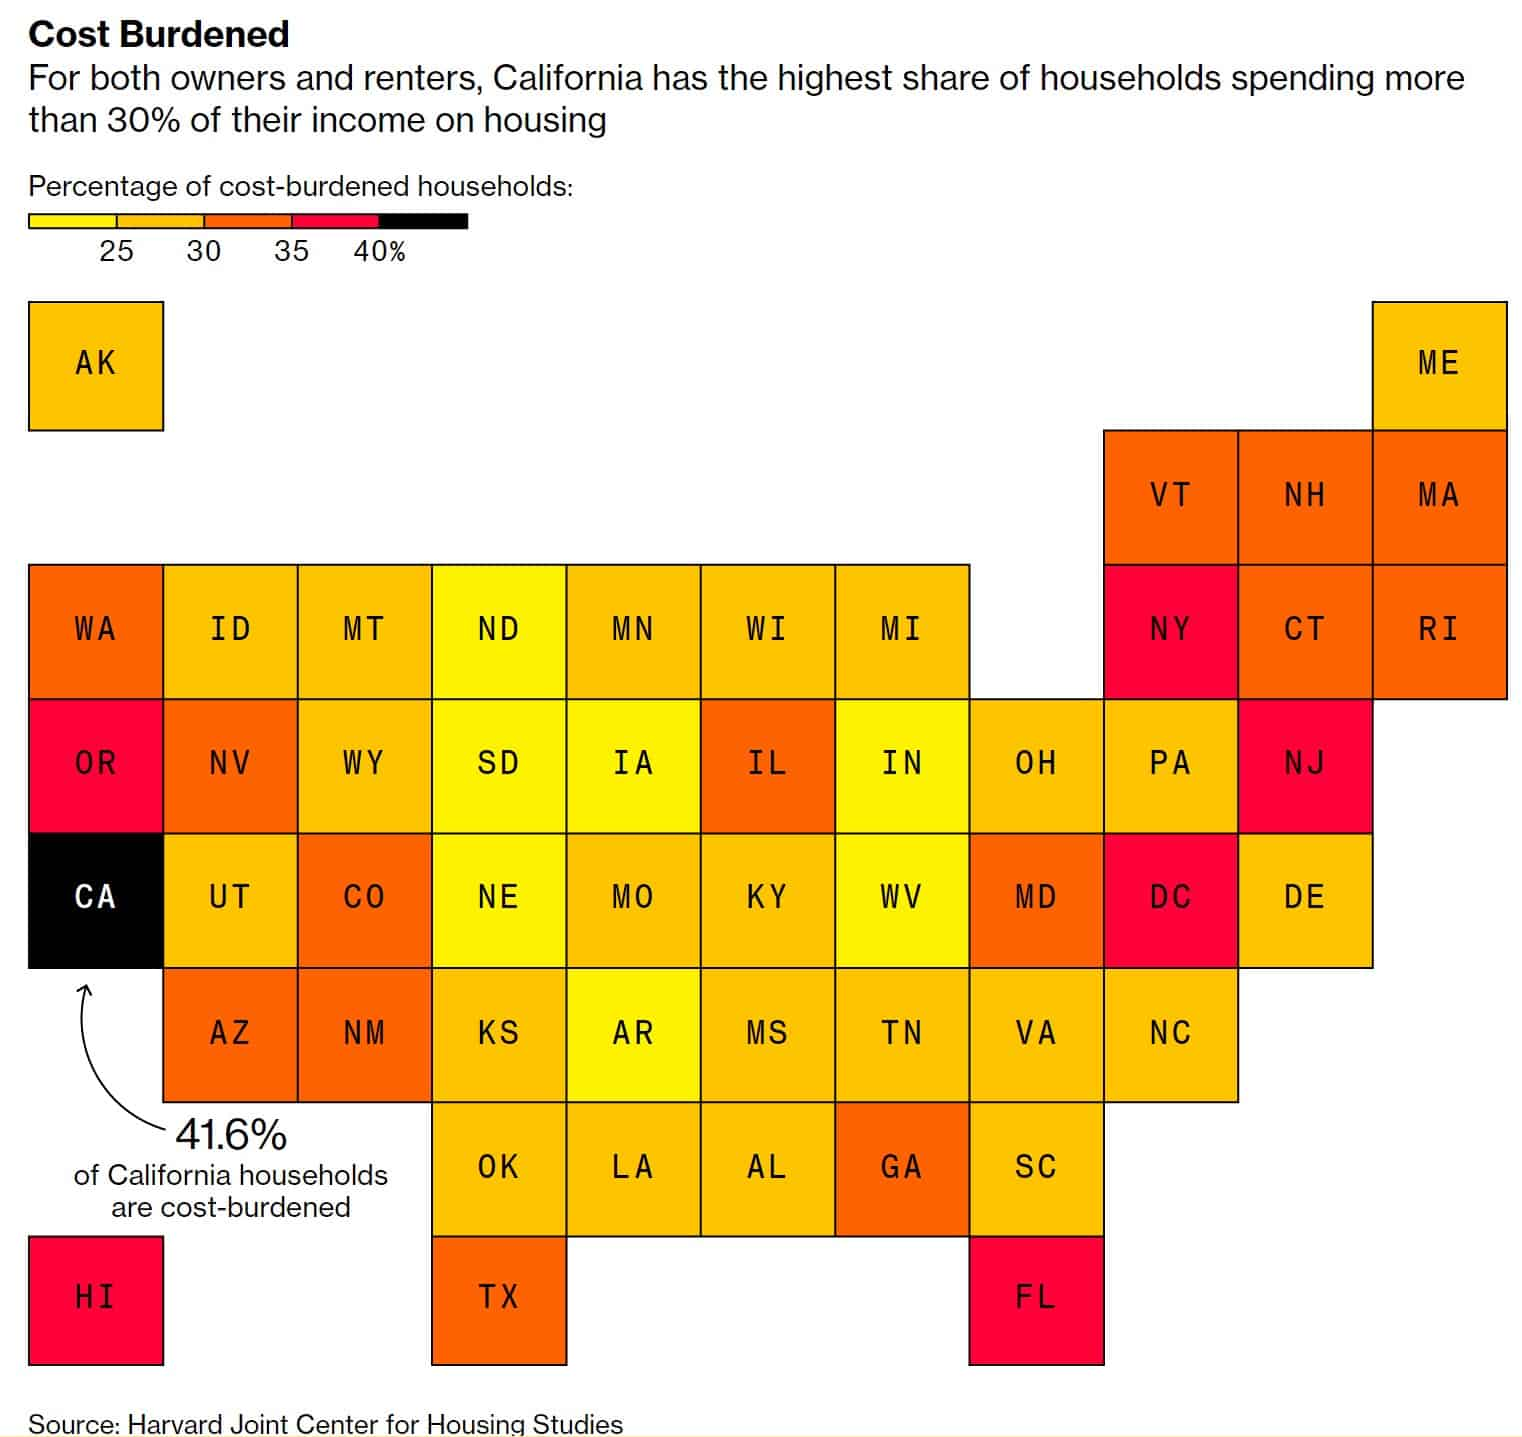 California households that are cost-burdened